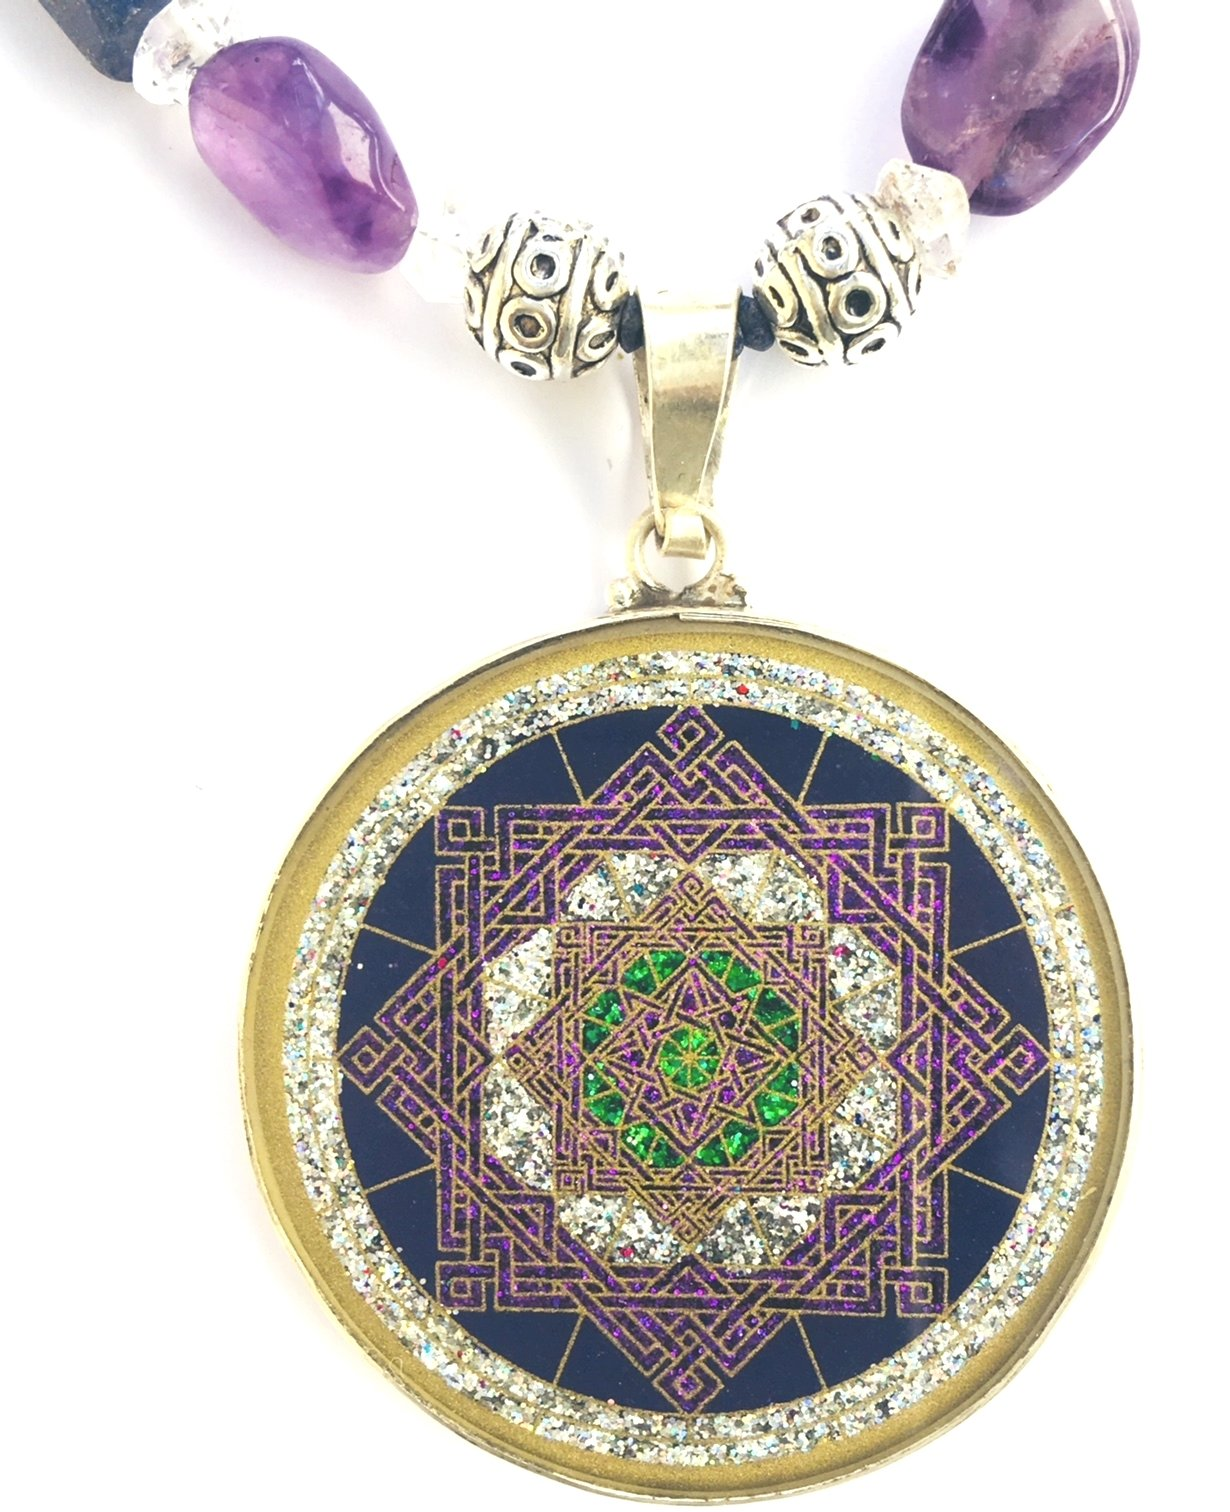 Star of Lakshmi pendant (lapis lazuli) and amethyst necklace by Scalar Heart Connection 680491185235